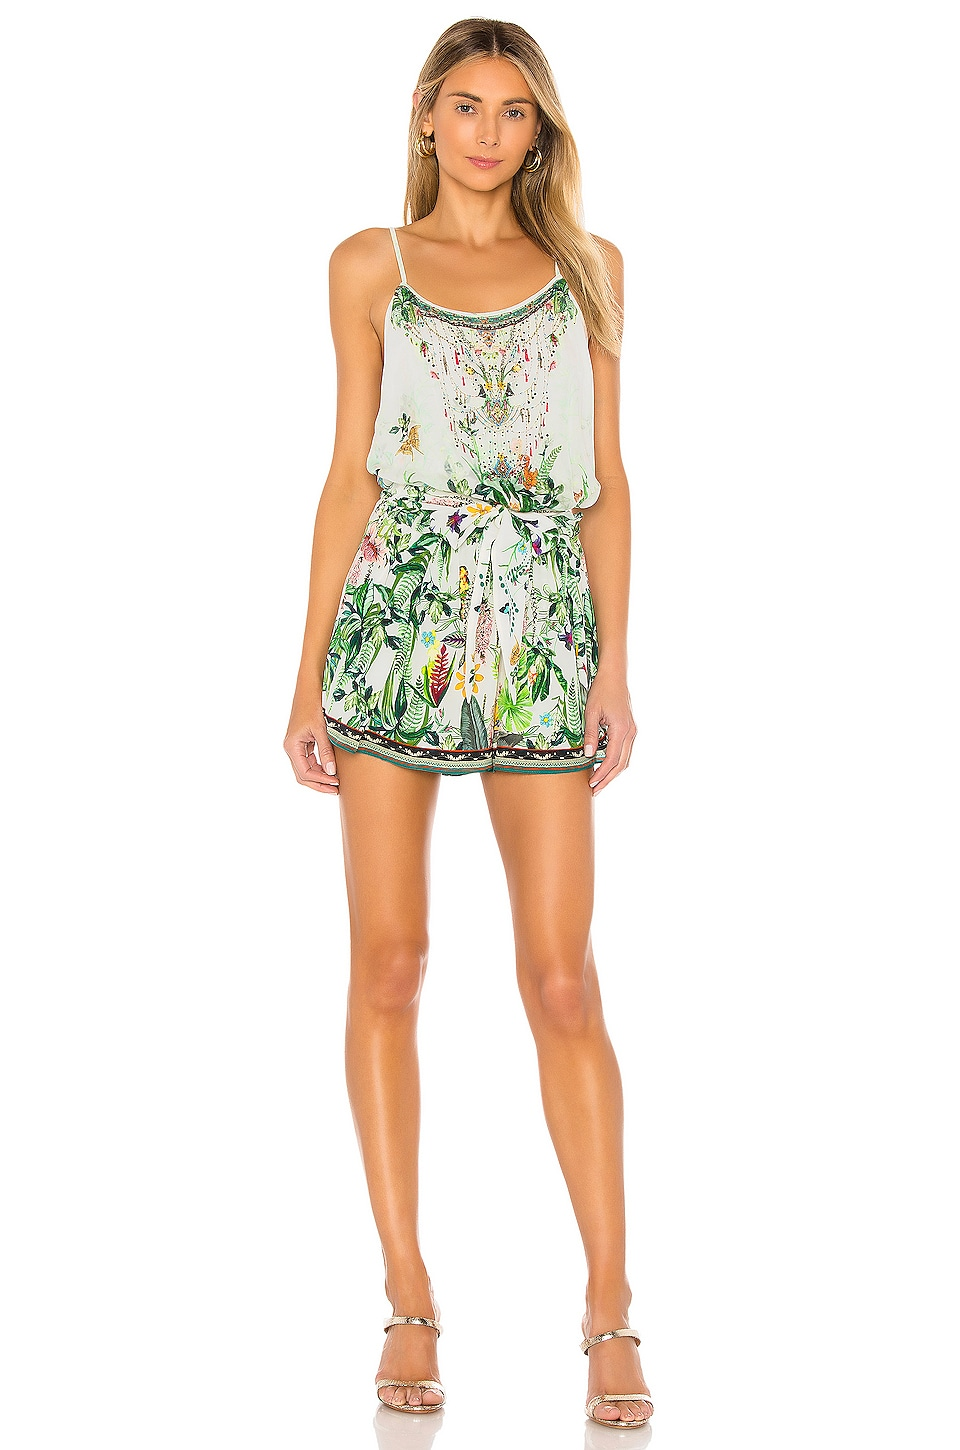 Camilla Shoestring Strap Romper in Daintree Darling